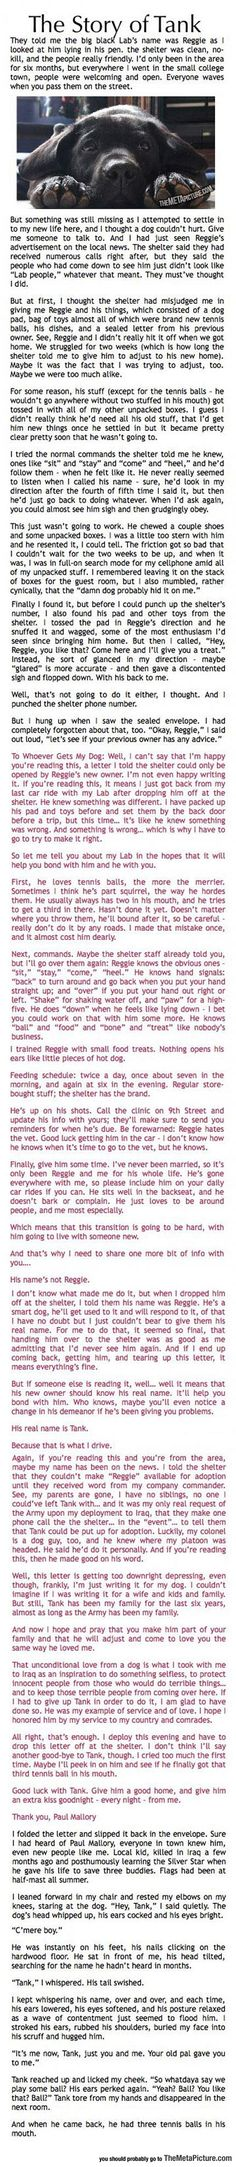 Kleenex alert ~ I wonder if he paid boarding fees to help care for Reggie.  Such love.~ This Is A Must Read